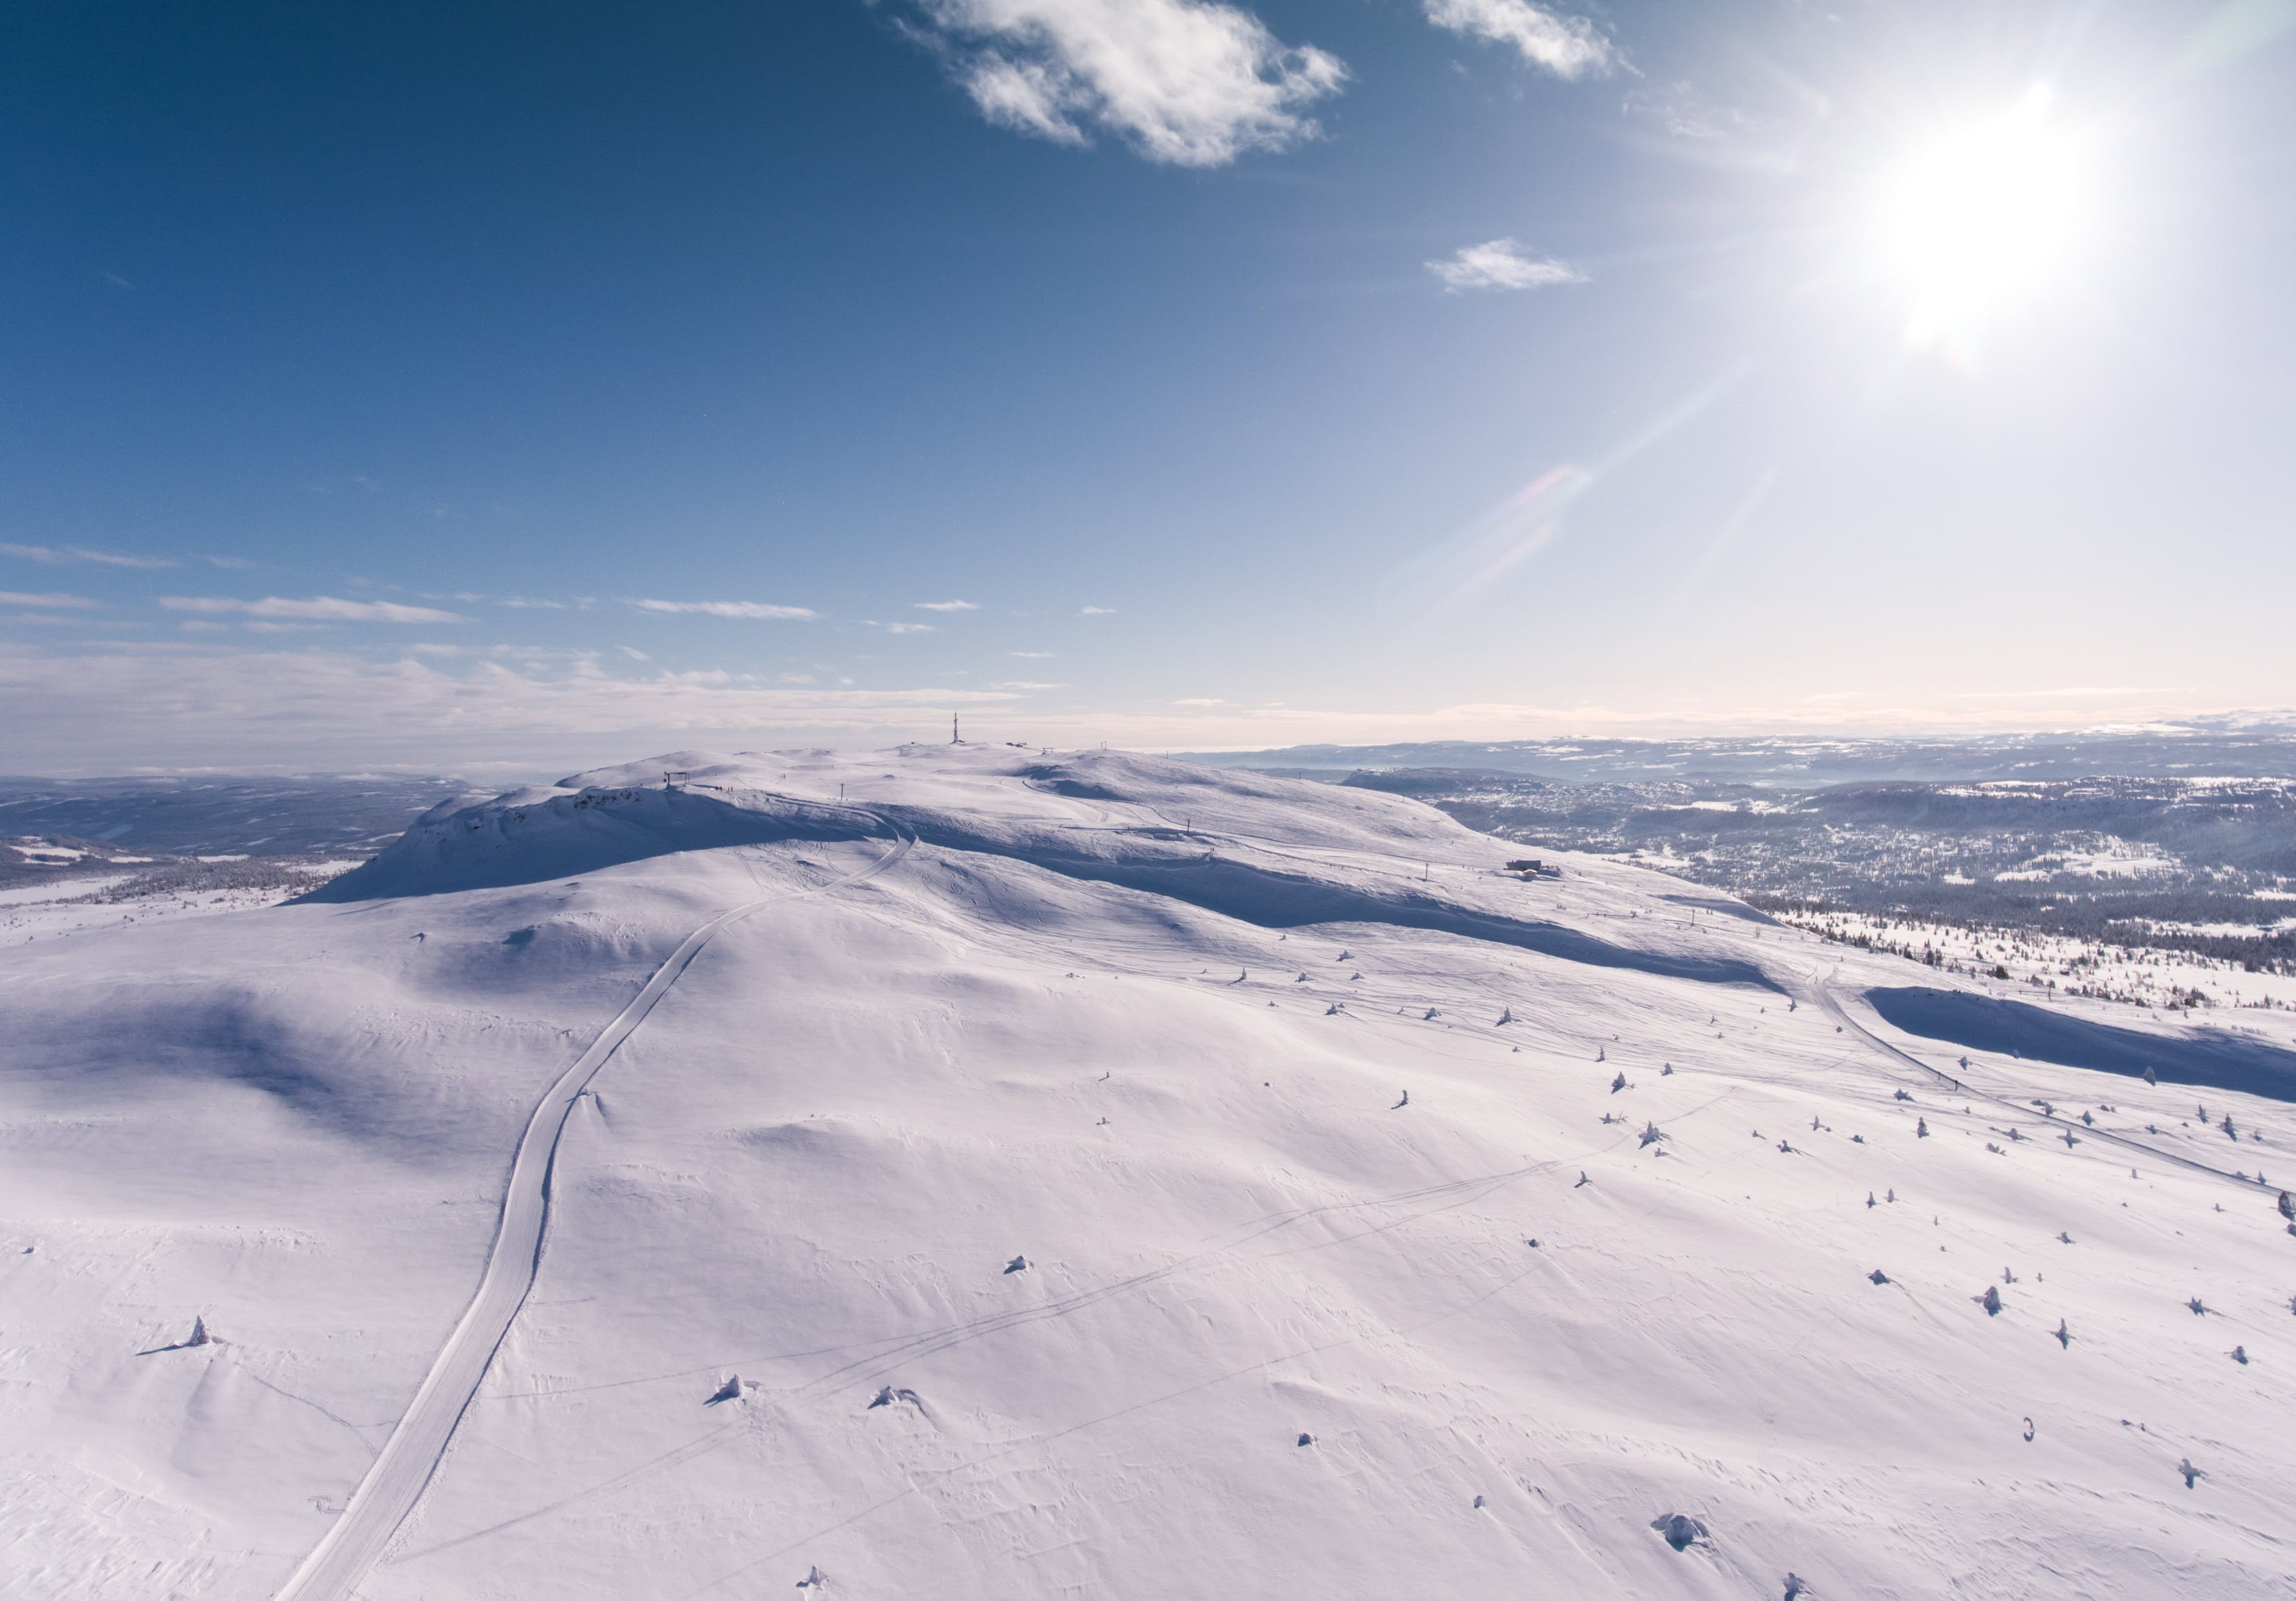 Aerial Photography Of Snowy Hill